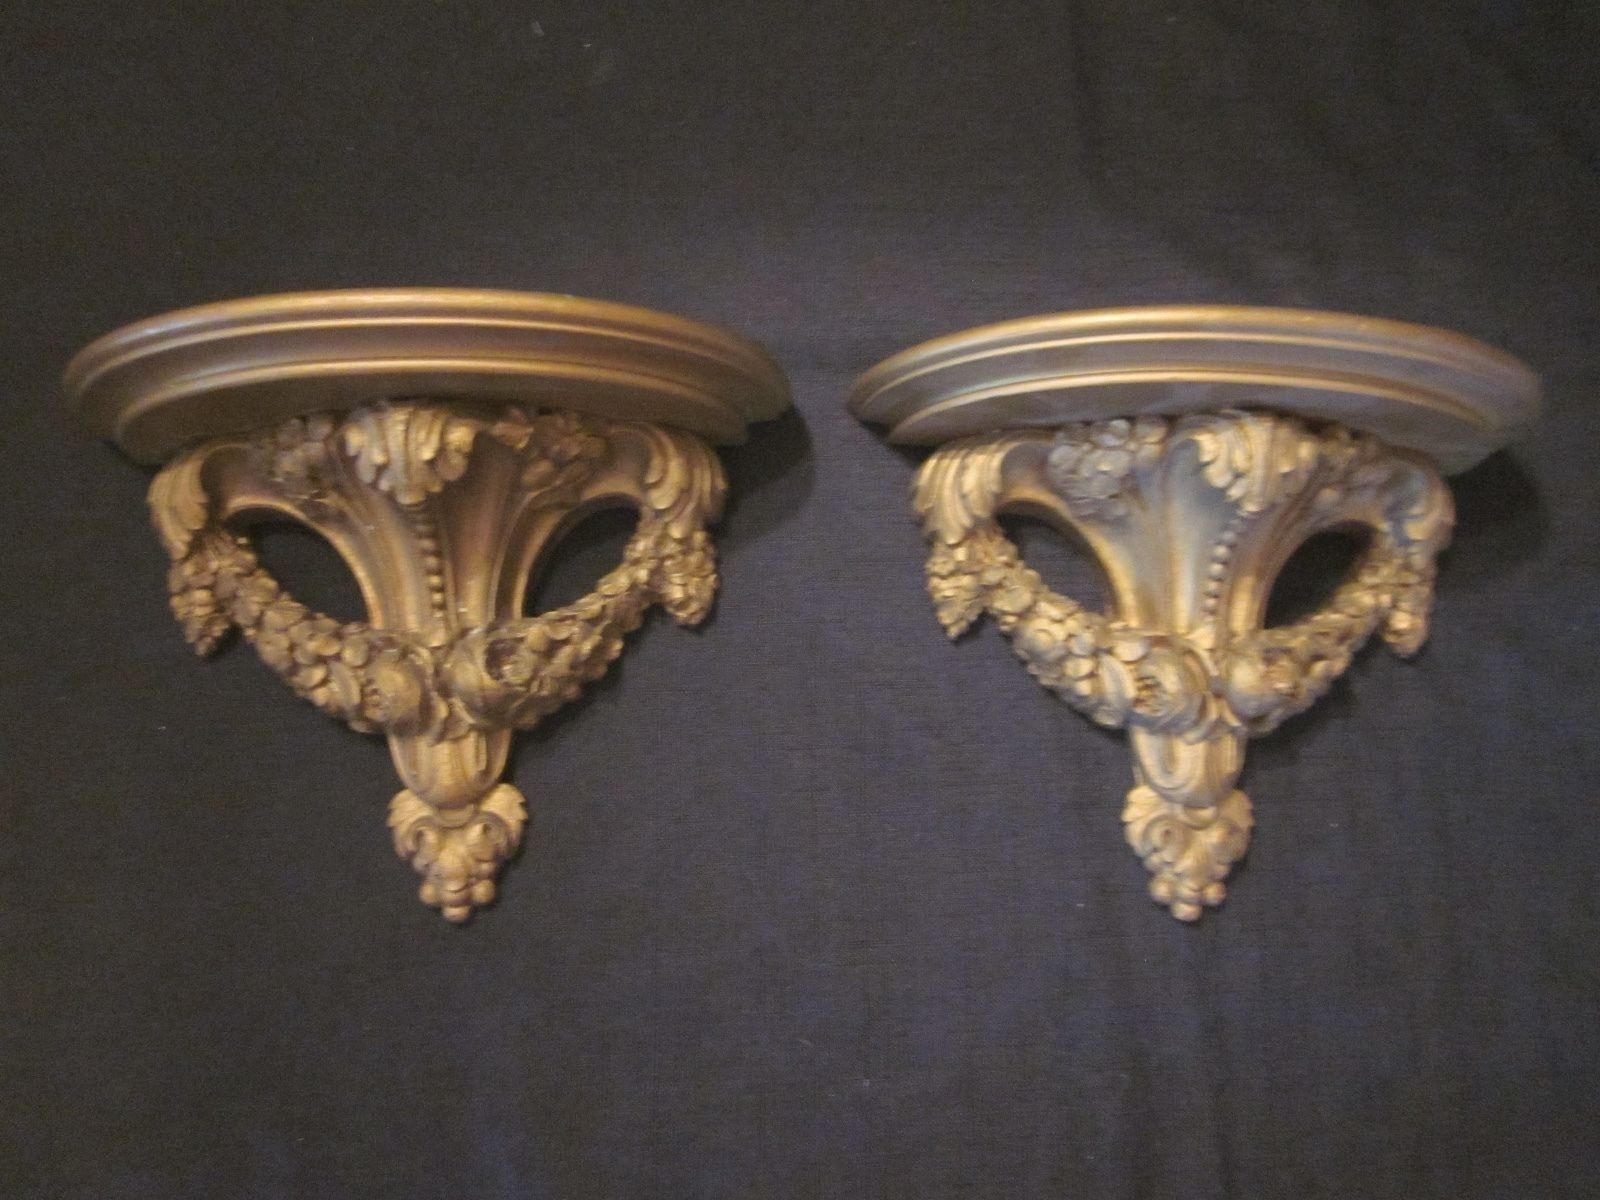 Vintage Decorative Ornate Syroco Wood Pair Gold Wall Hanging Sconce